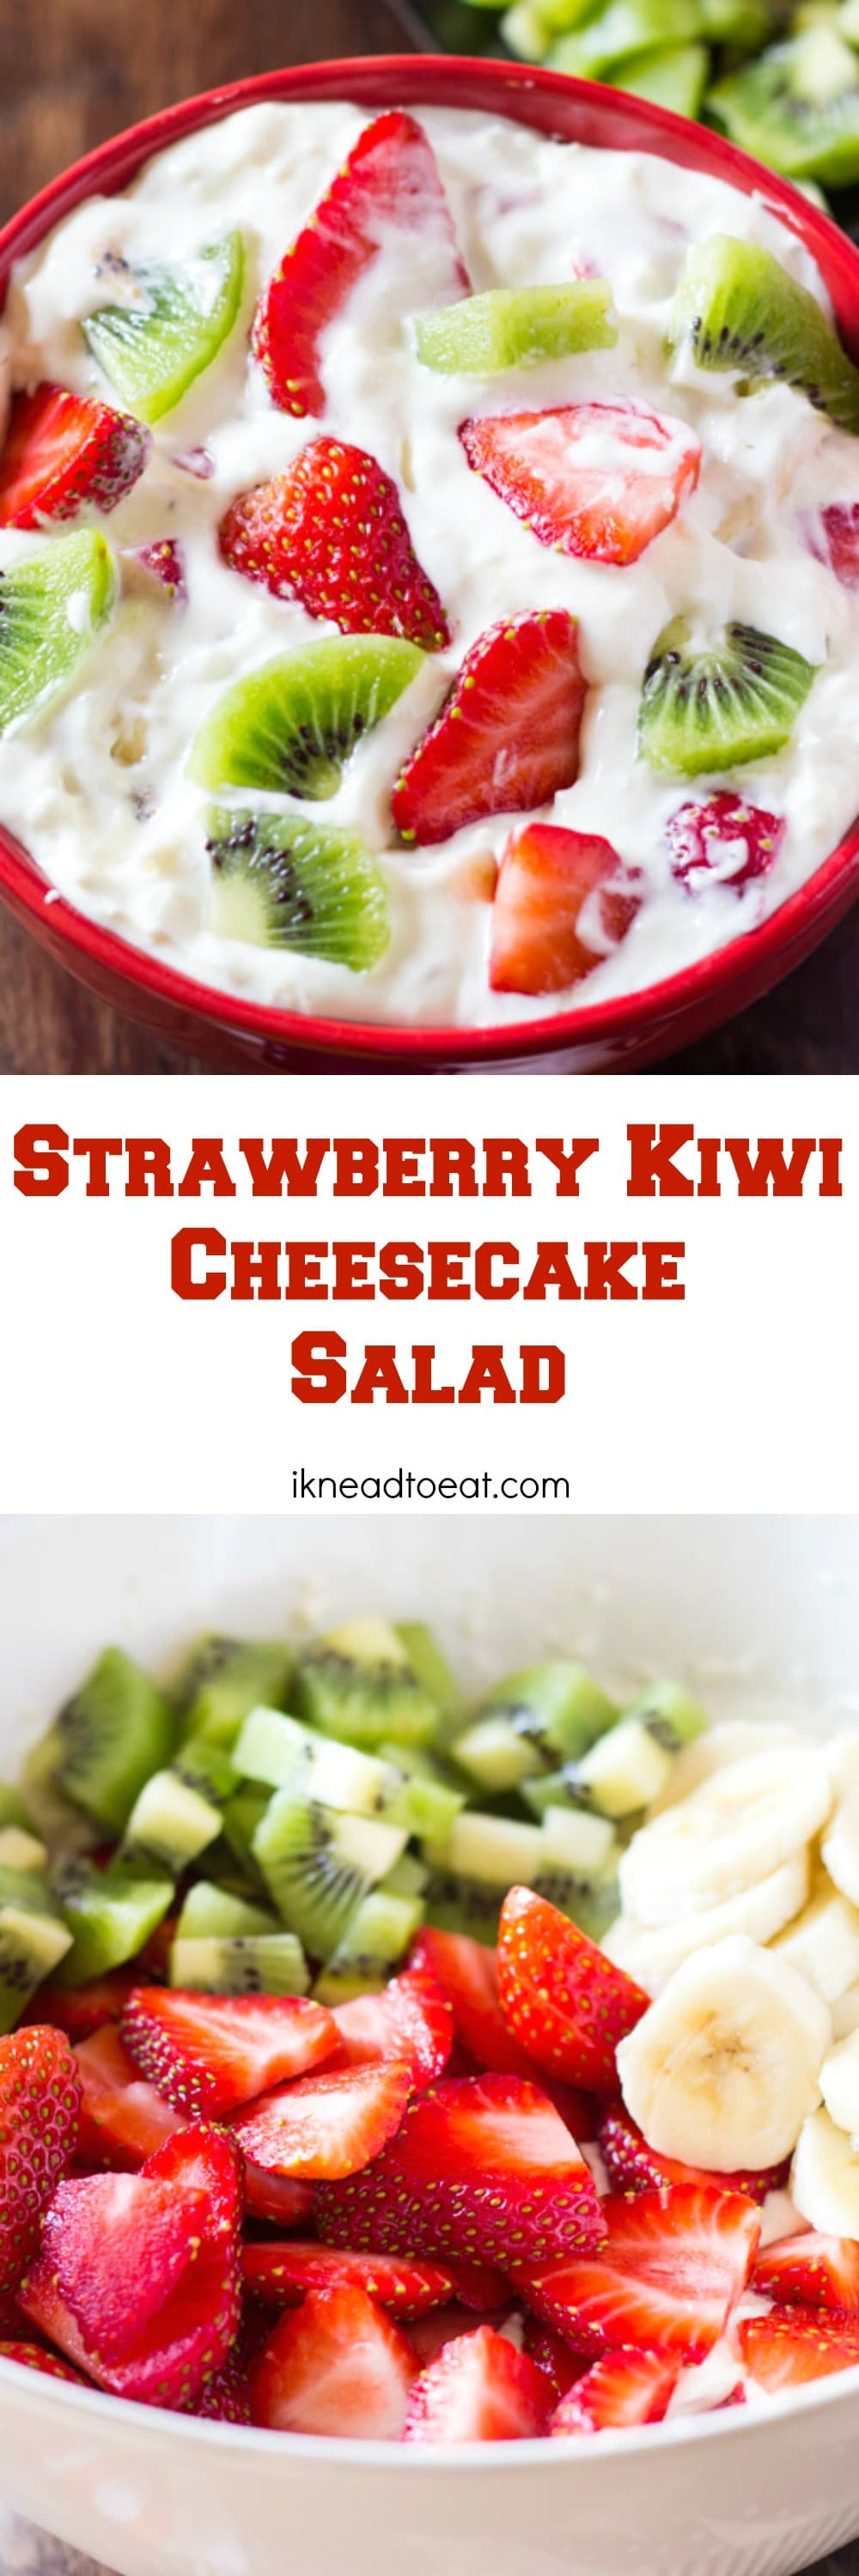 Strawberry Kiwi Cheesecake Salad